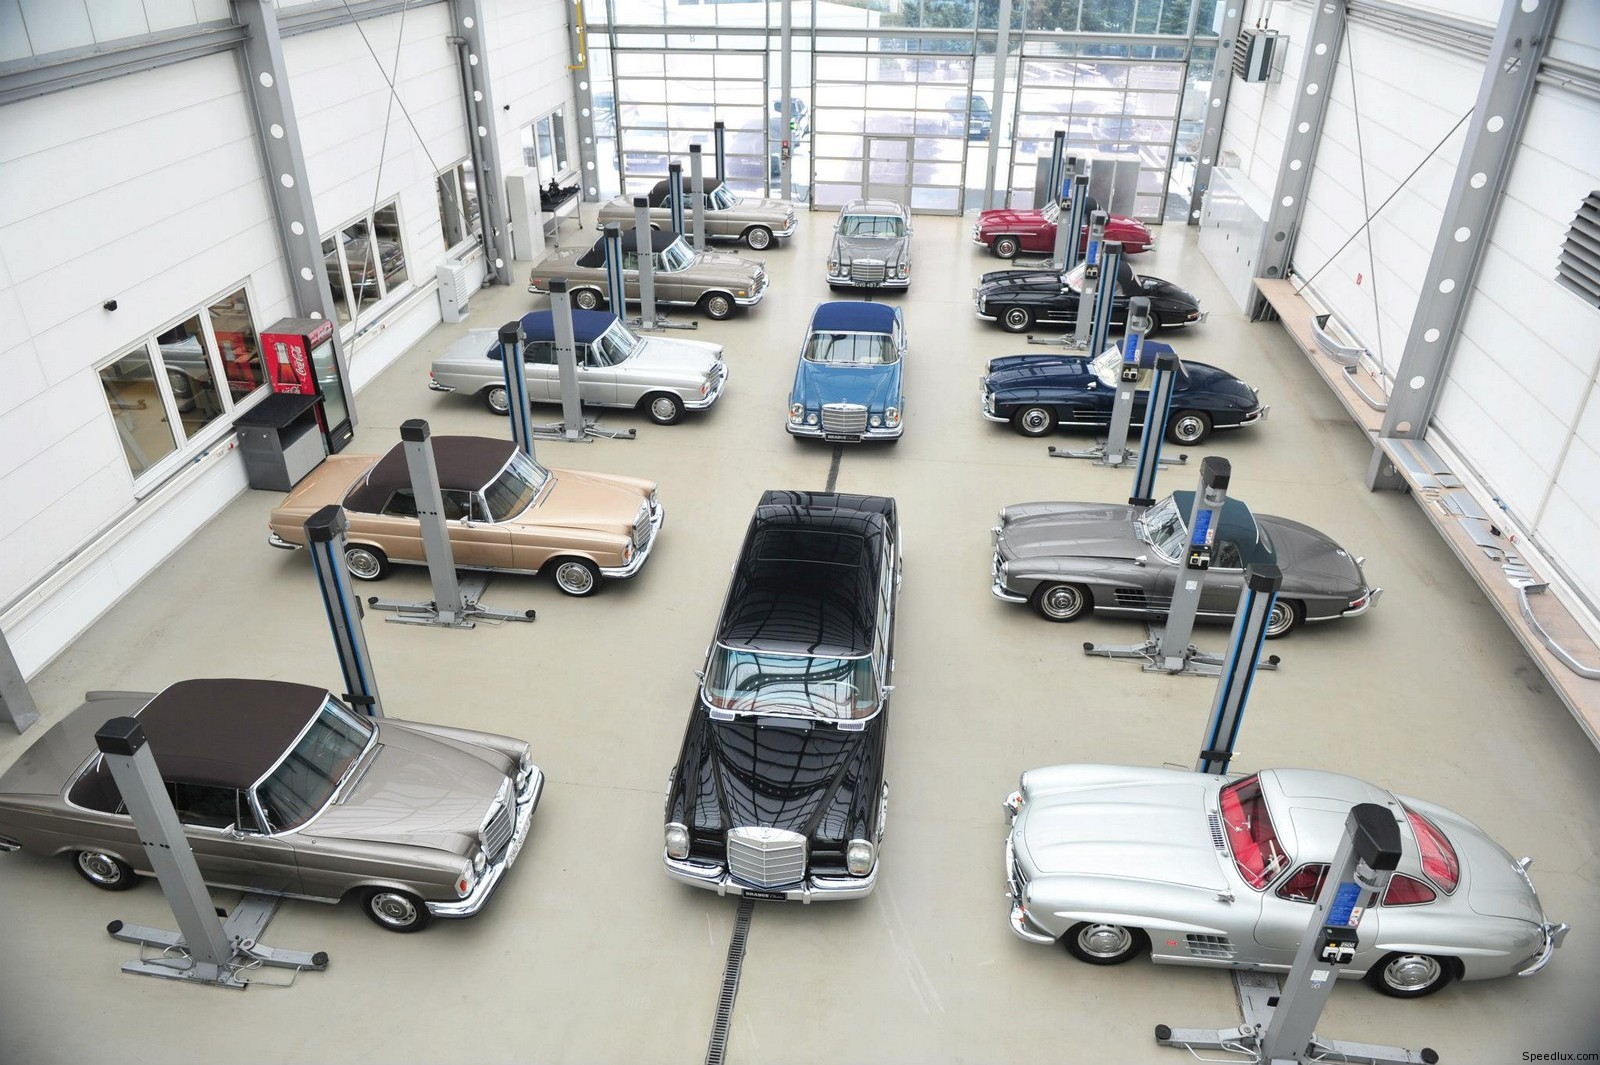 brabus-workshop